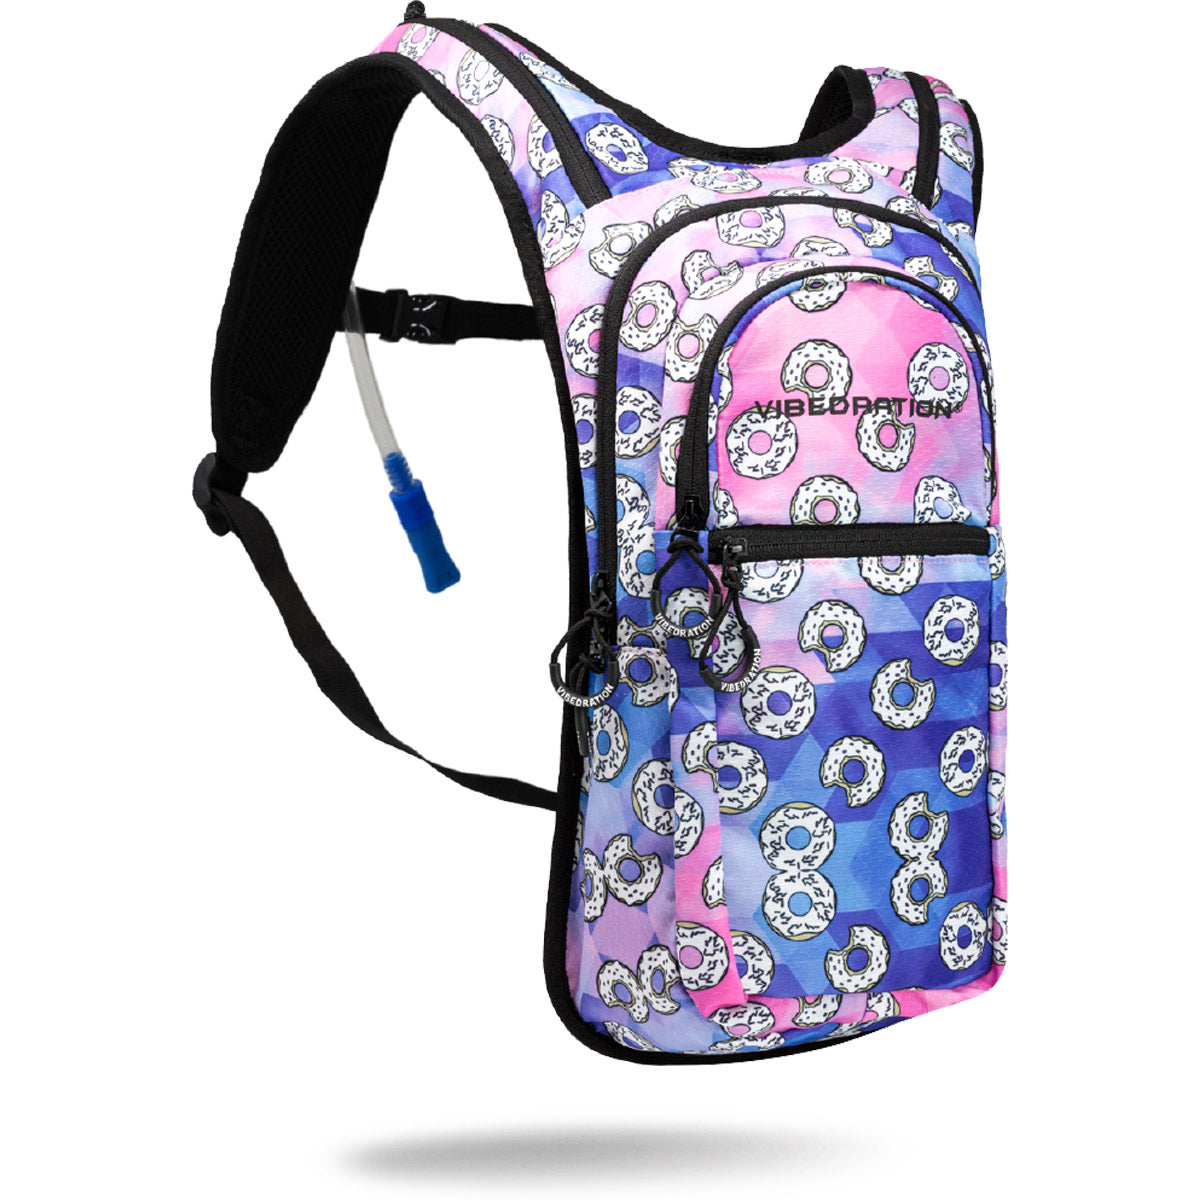 Pink and Blue donut printed hydration pack with 2.0 Liter water bladder.